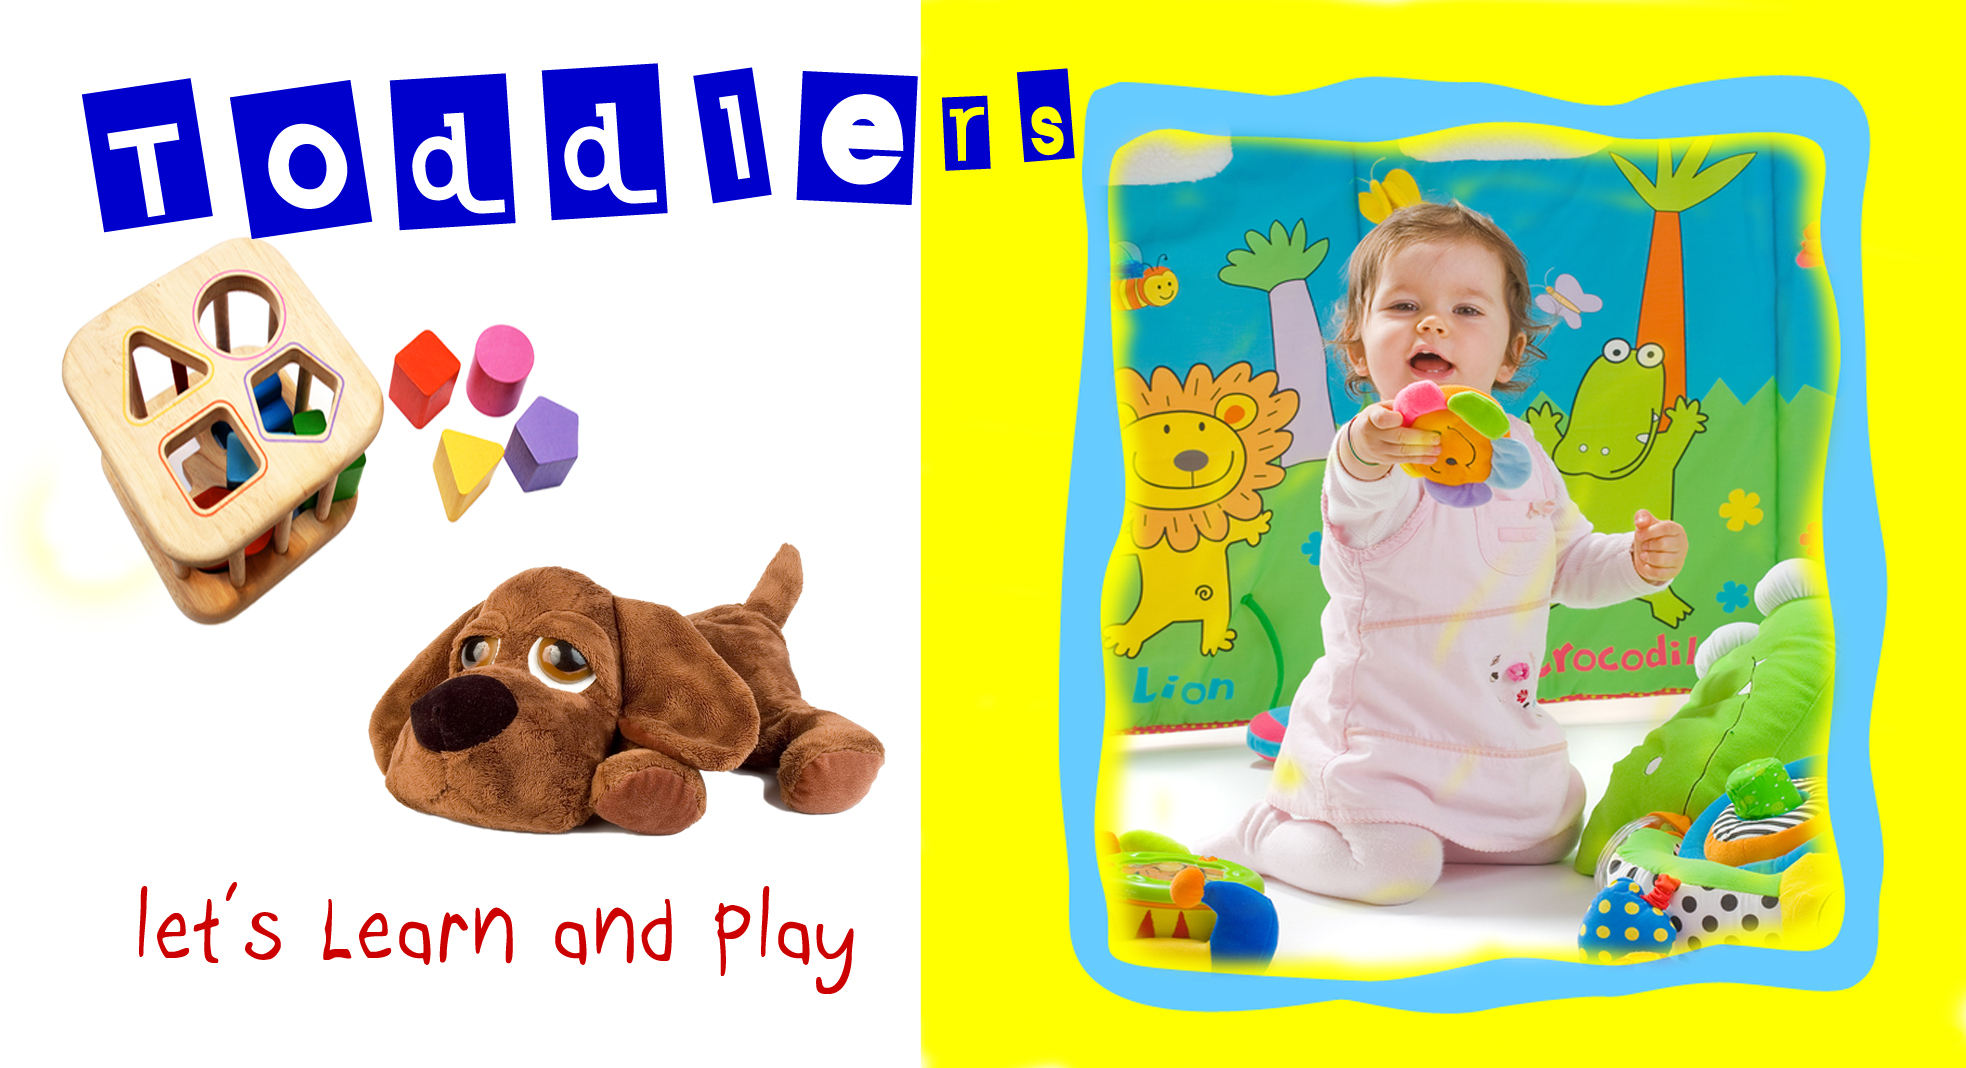 b05d1b40a Fancy Little Kids  Dear Little Ones... Our Products Are Chosen to ...